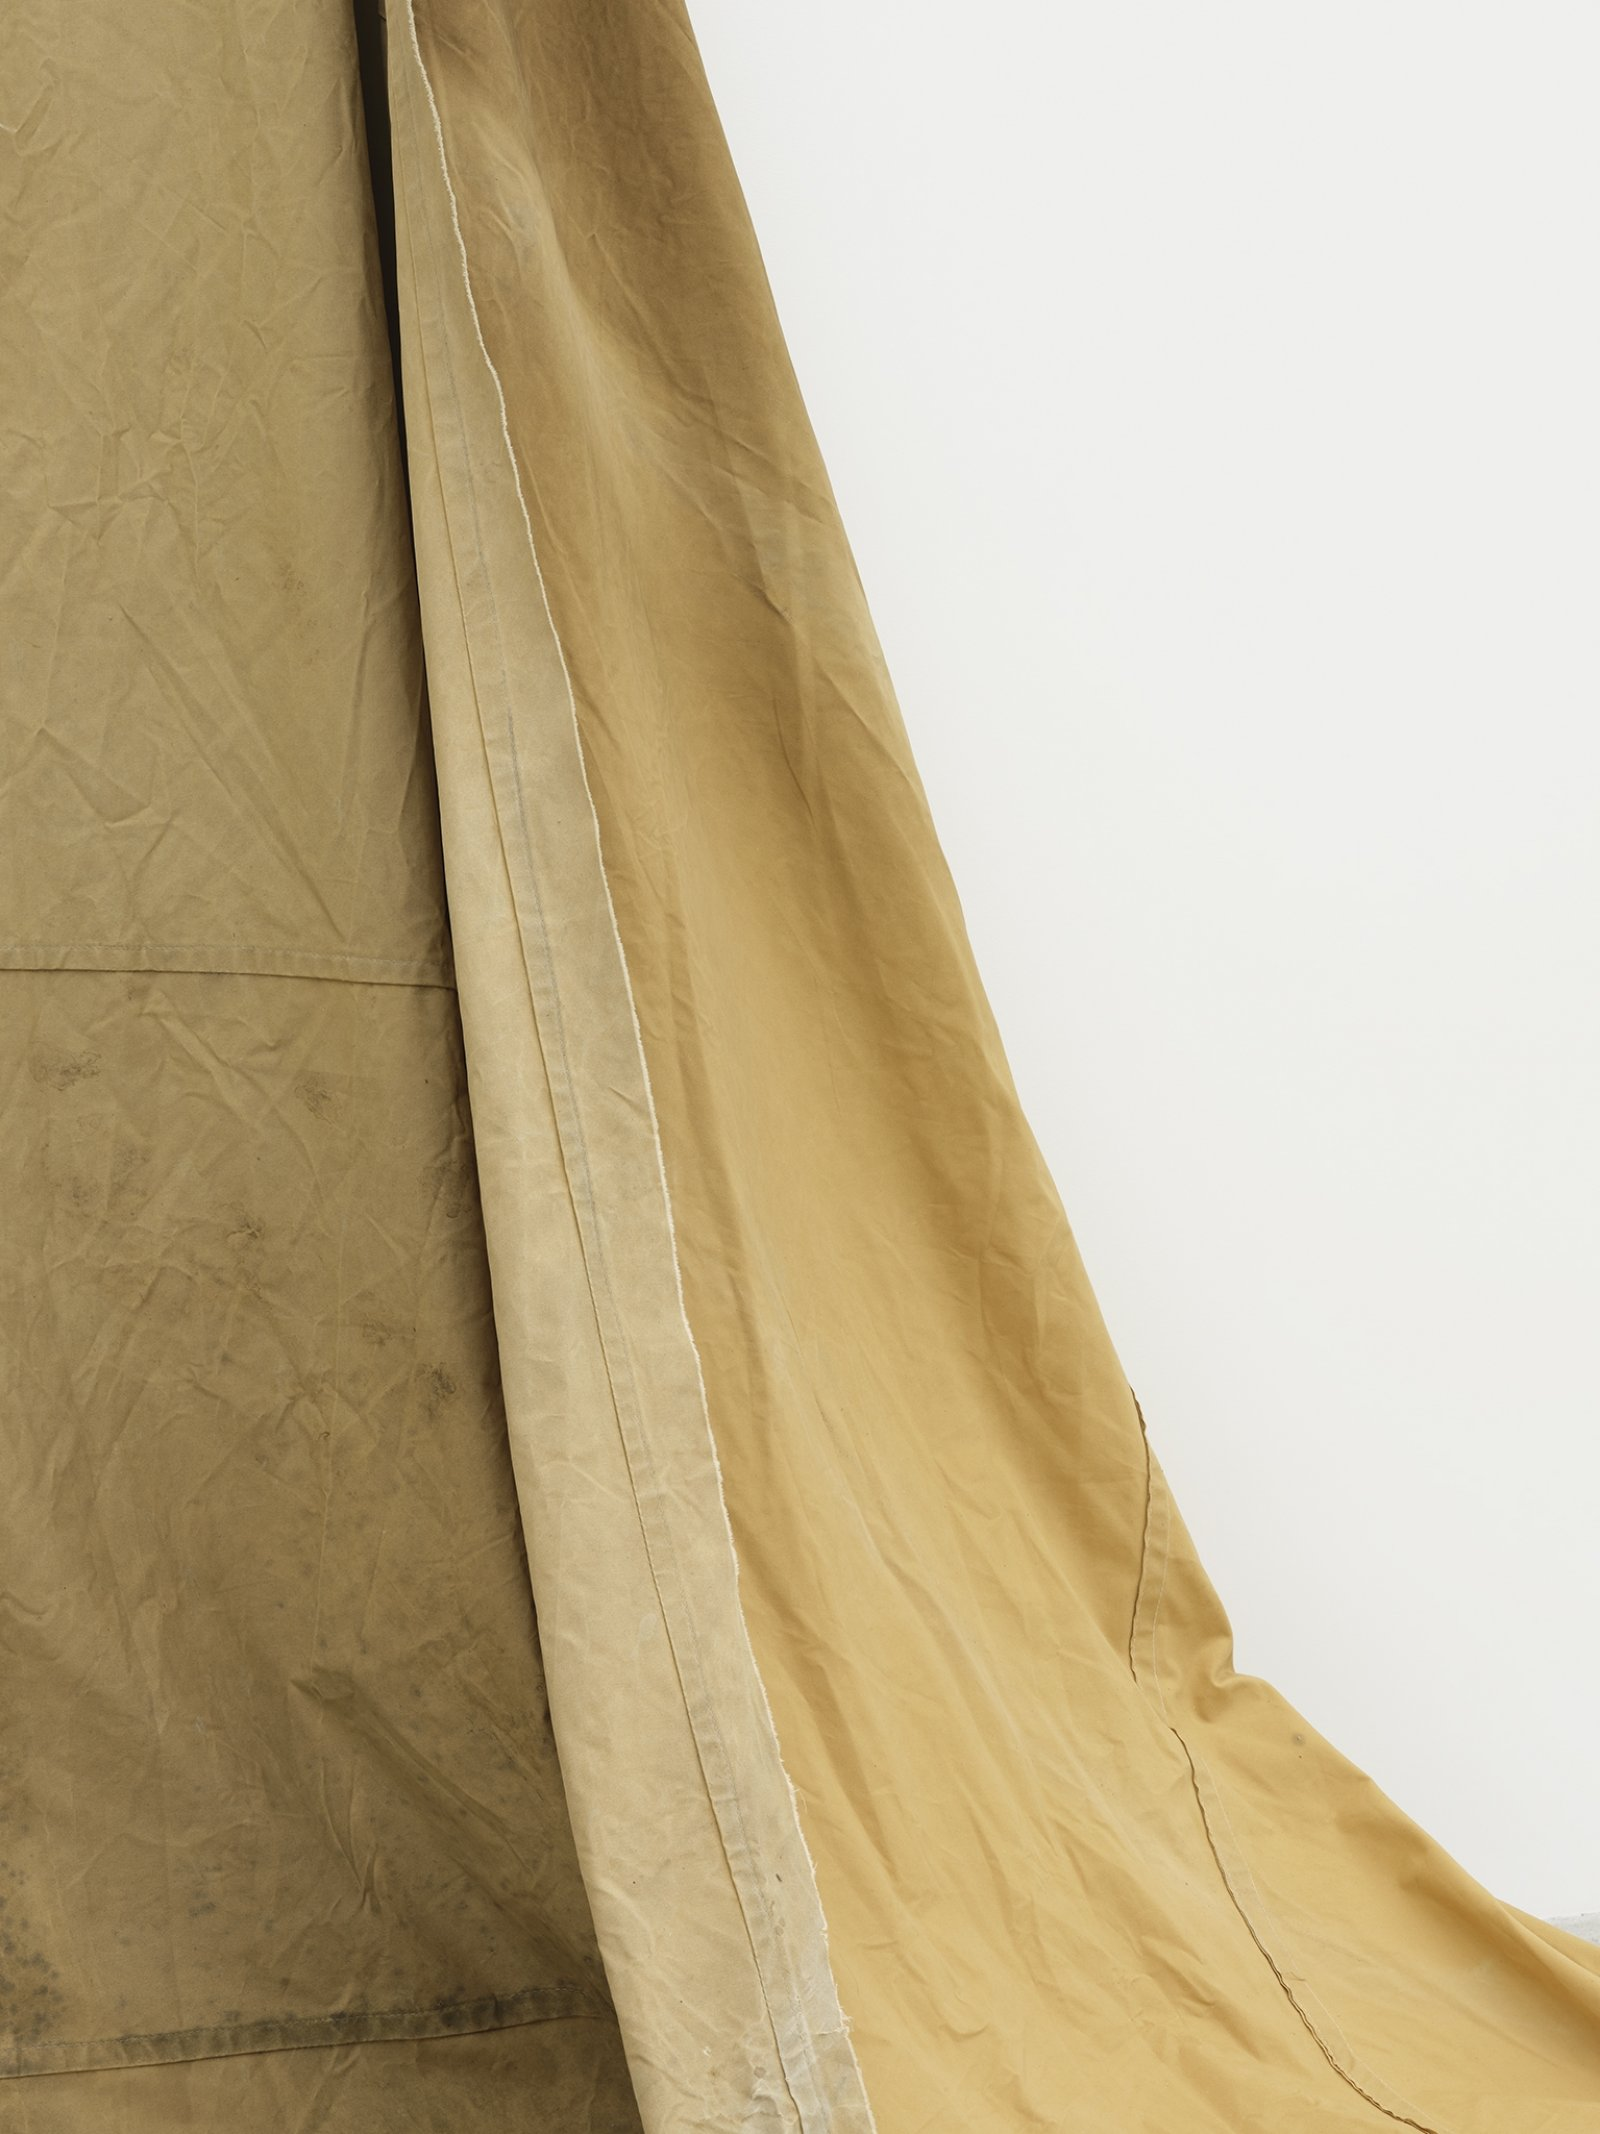 Duane Linklater, a gift from Doreen (detail), 2016–2019, hand-dyed canvas, teepee canvas, blueberry extract, grommets, nails, 108 x 270 x 123 in. (274 x 686 x 312 cm)